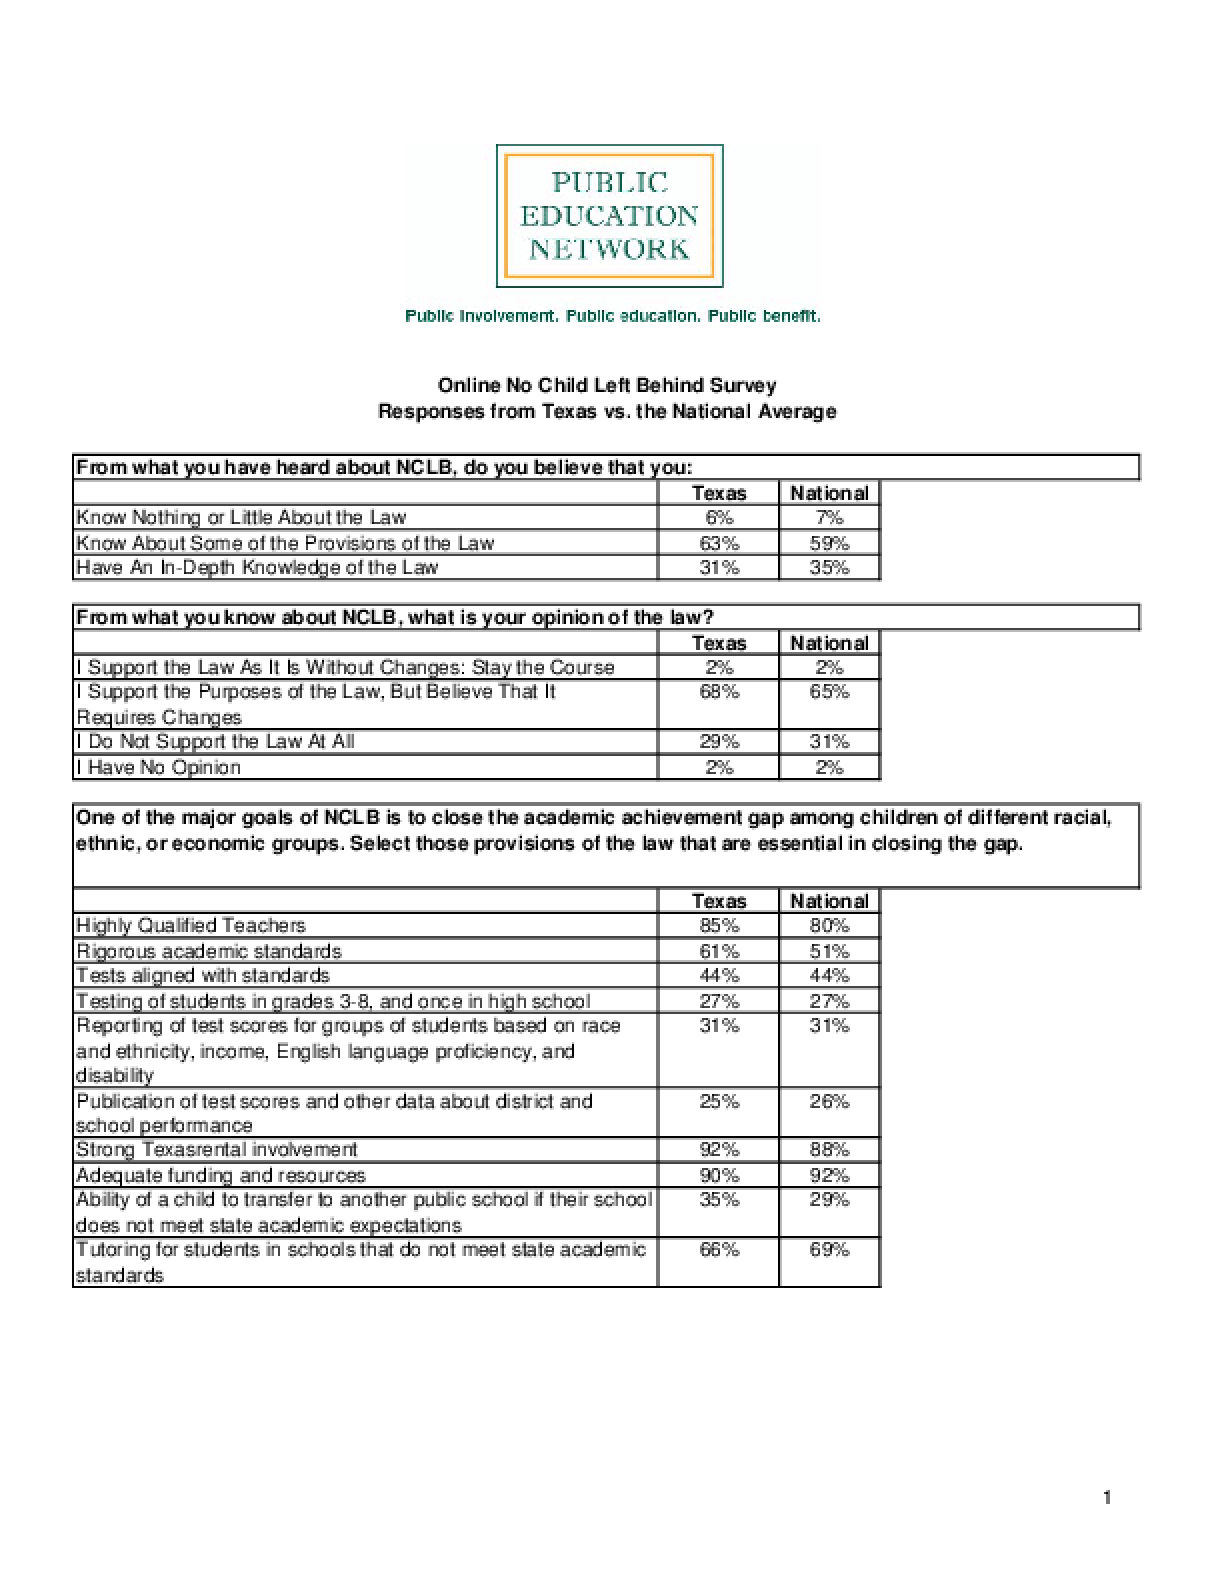 Online No Child Left Behind Survey Responses from Texas vs. the National Average